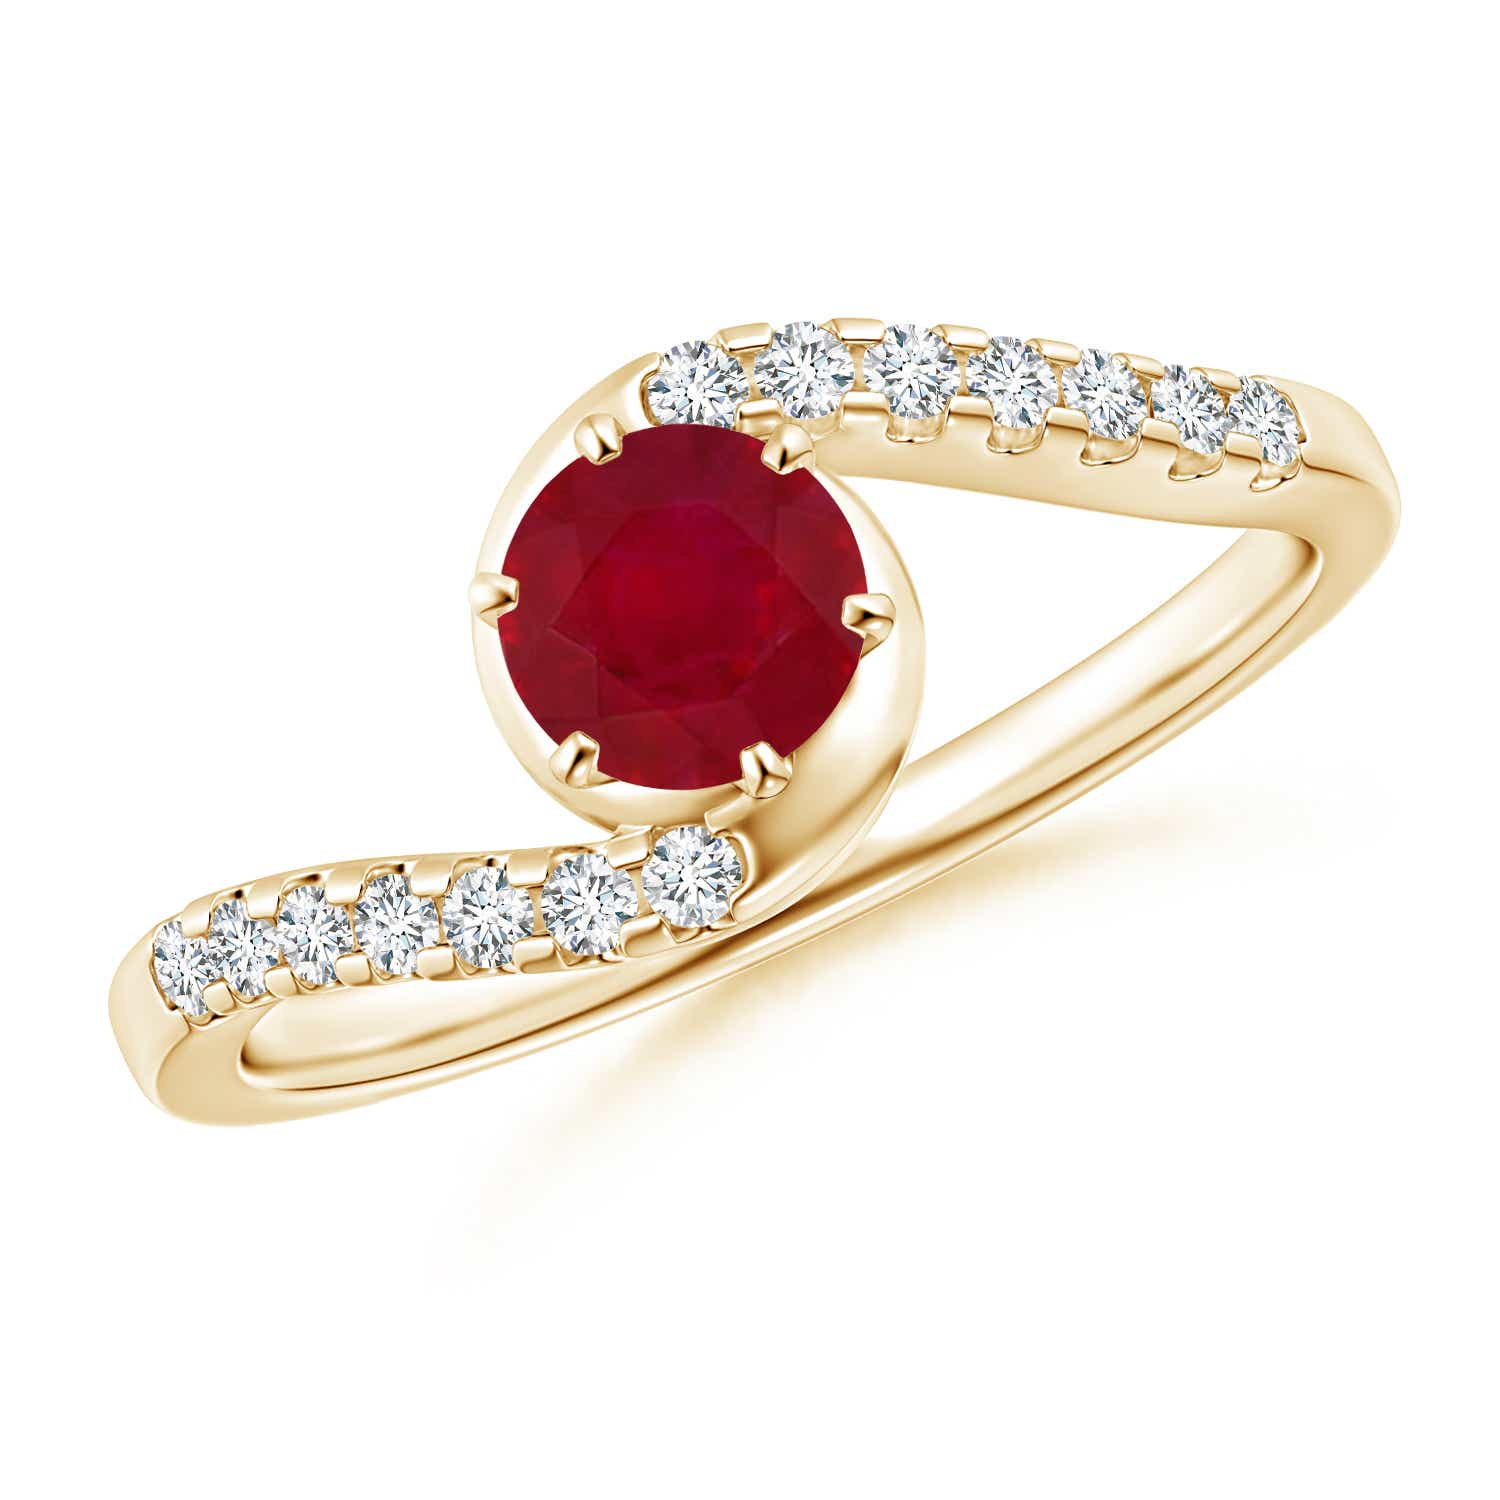 Angara Five Ruby Ring in 14k Yellow Gold 0cMXclDxD